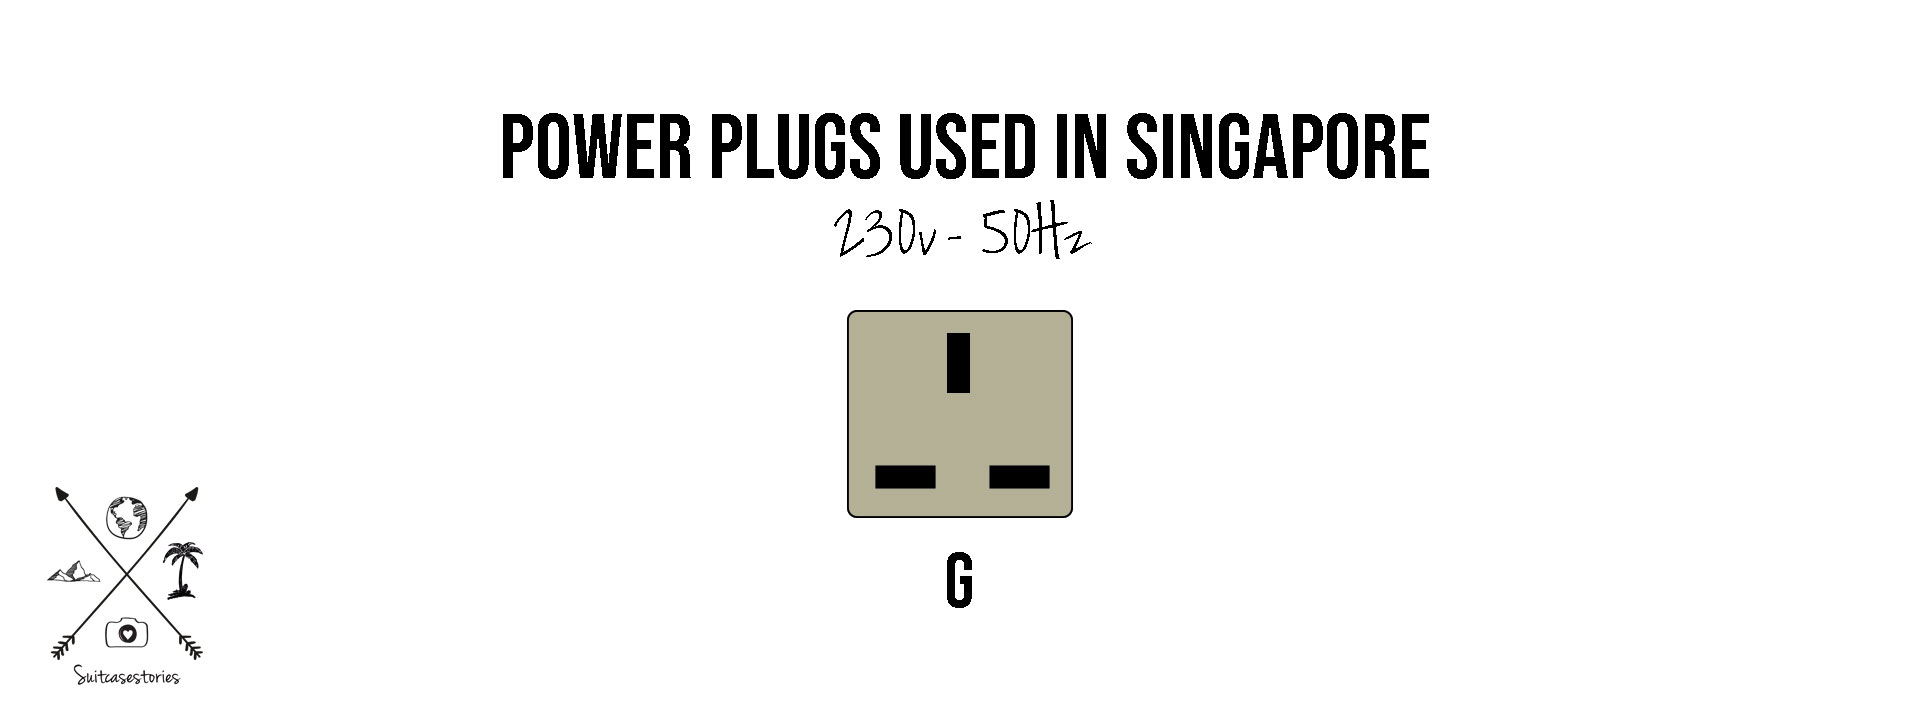 electricity in Singapore